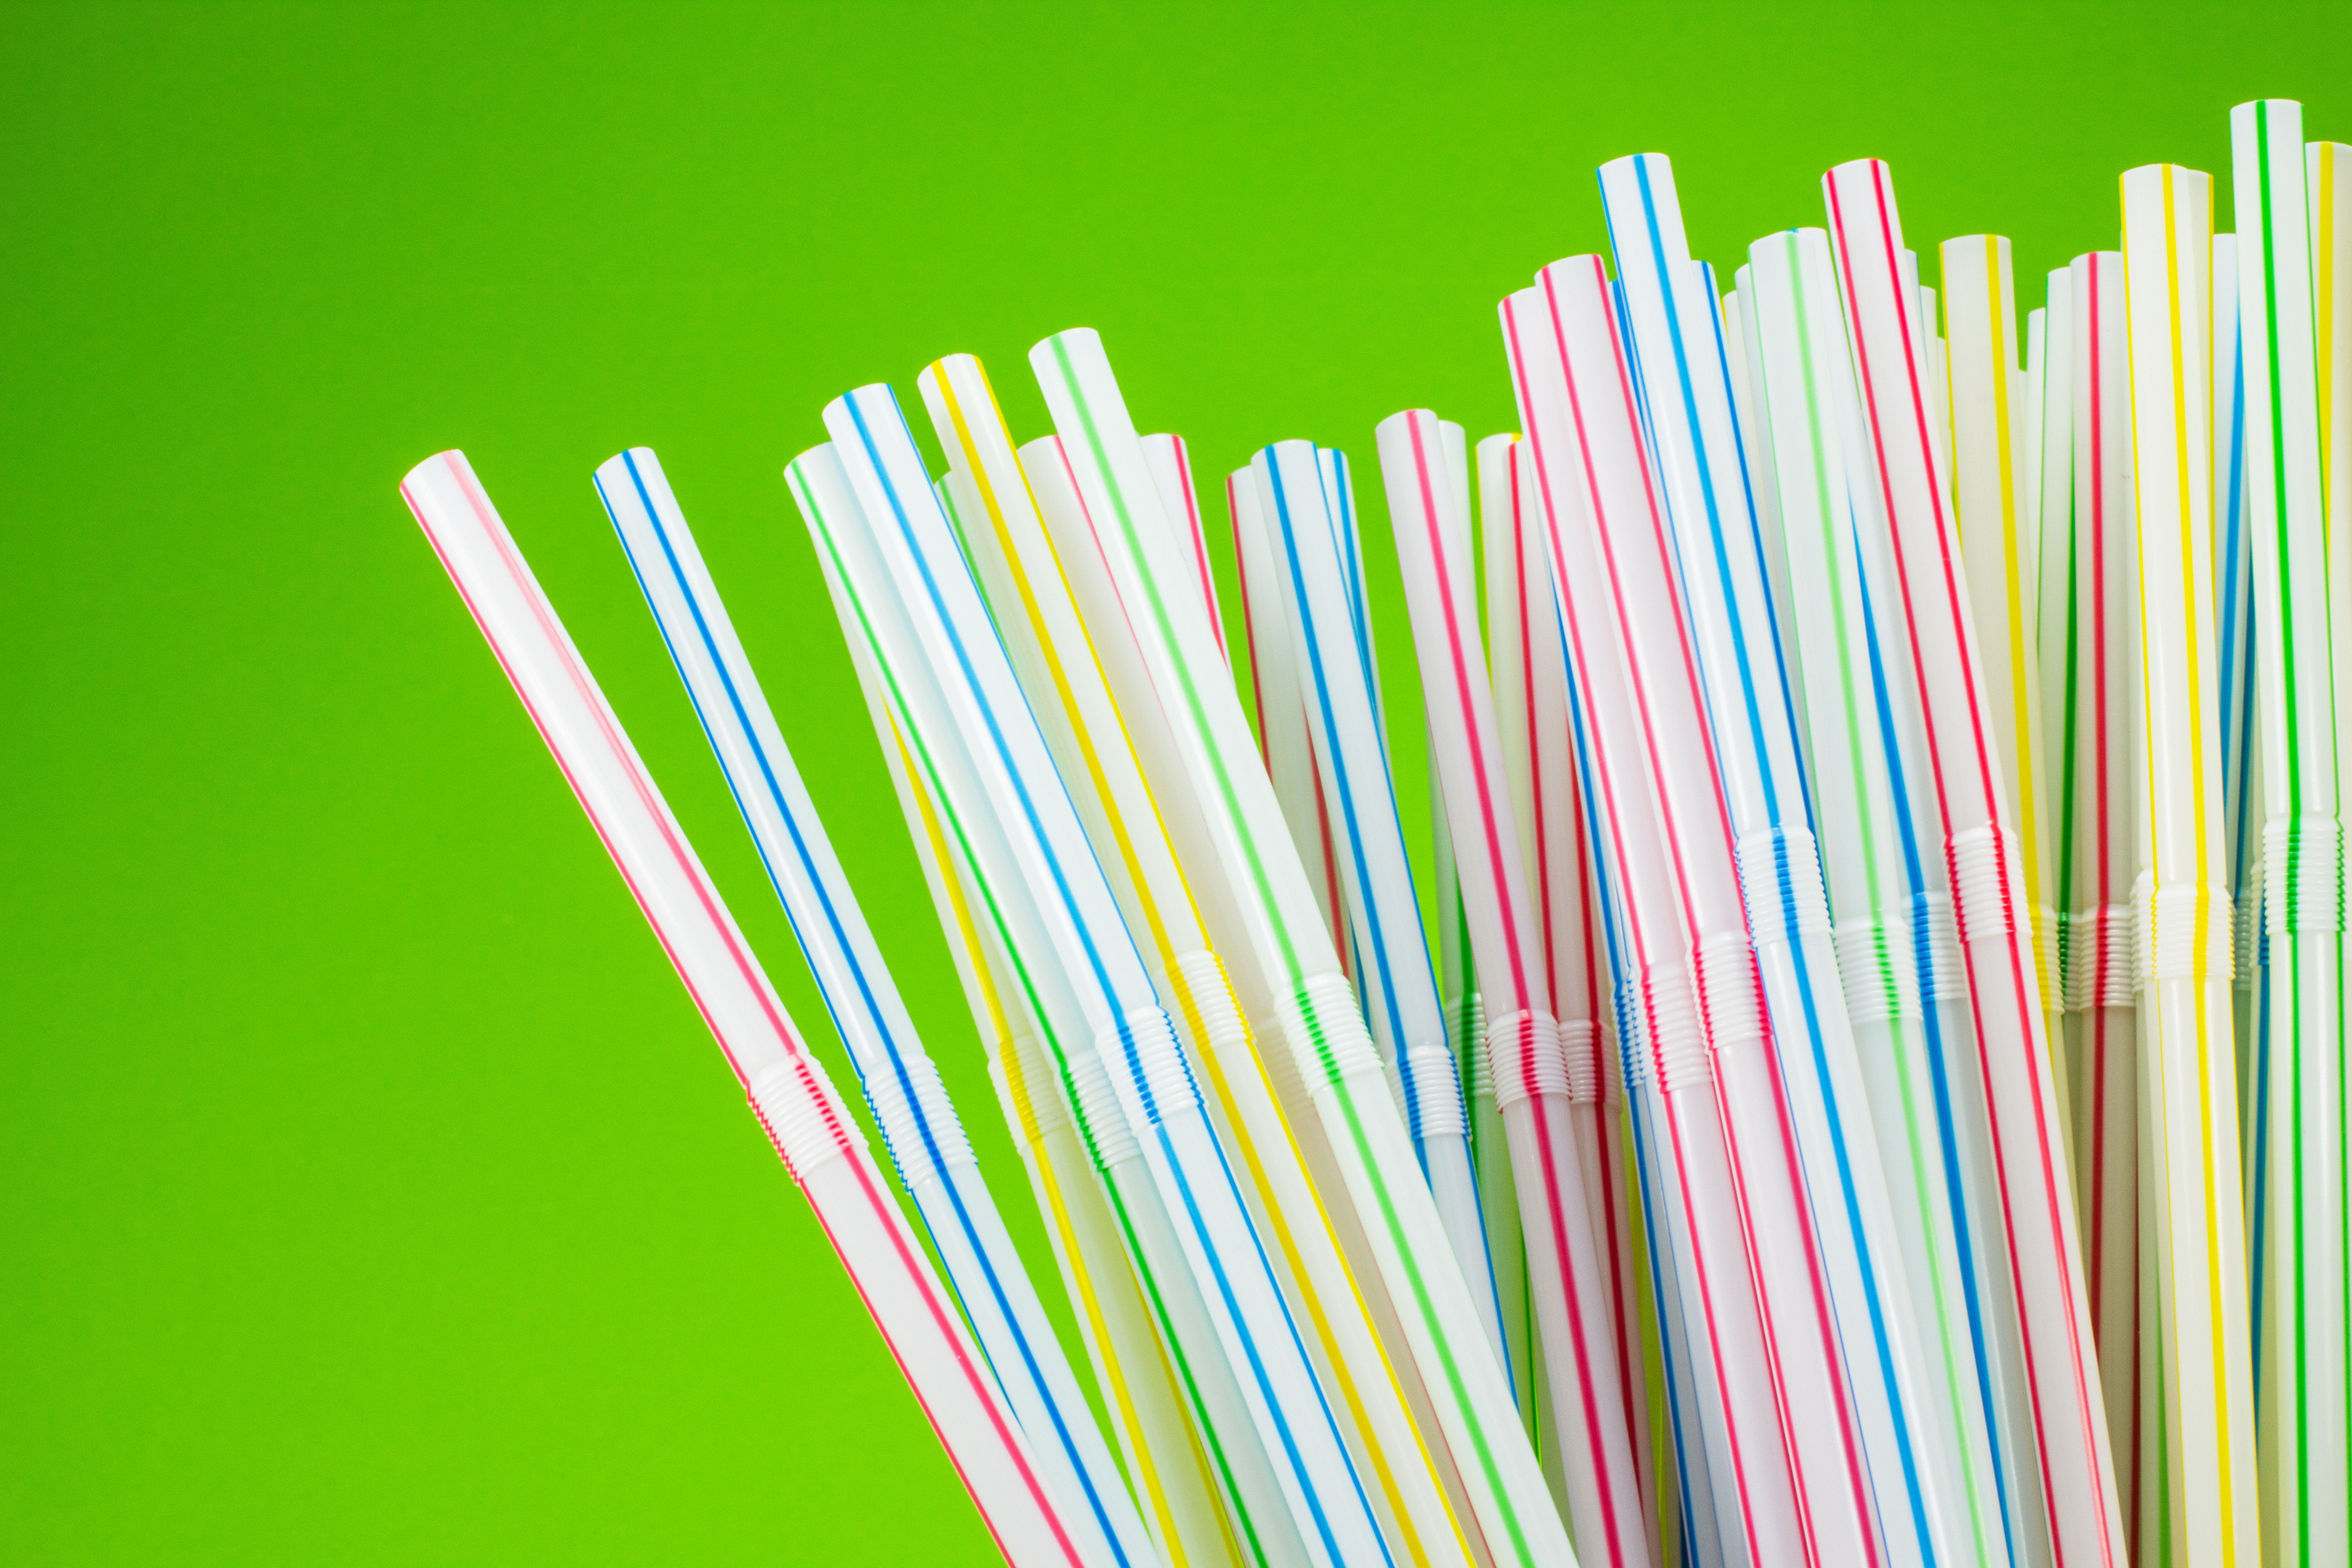 colored drinking straws on green background